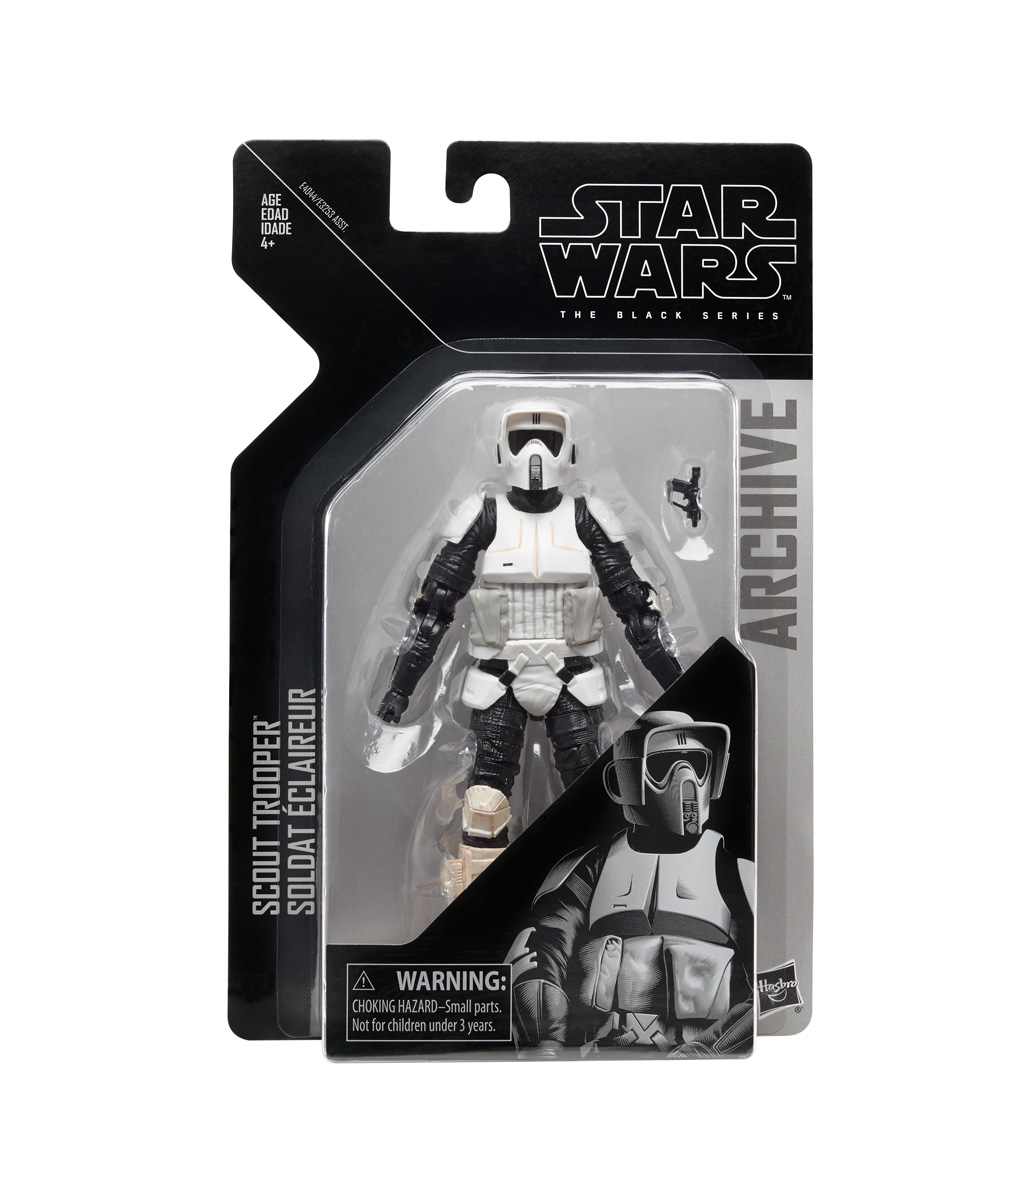 star-wars-the-black-series-archive-6-inch-figure-assortment-scout-trooper-in-pck_1